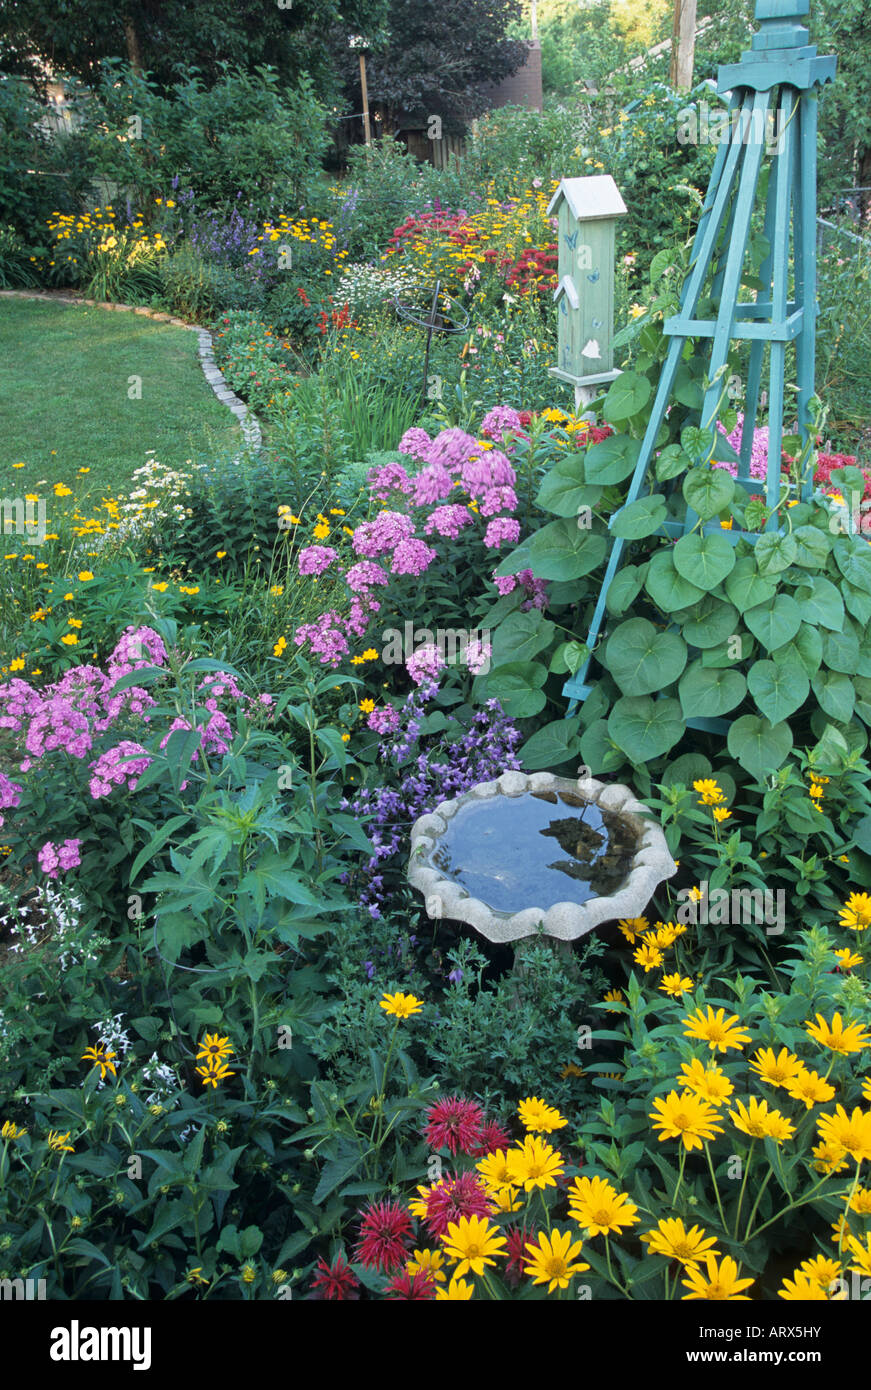 BIRDBATH, TRELLIS AND BUTTERFLY HOUSE IN MINNESOTA GARDEN PLANTED TO  ATTRACT BIRDS AND BUTTERFLIES. JULY